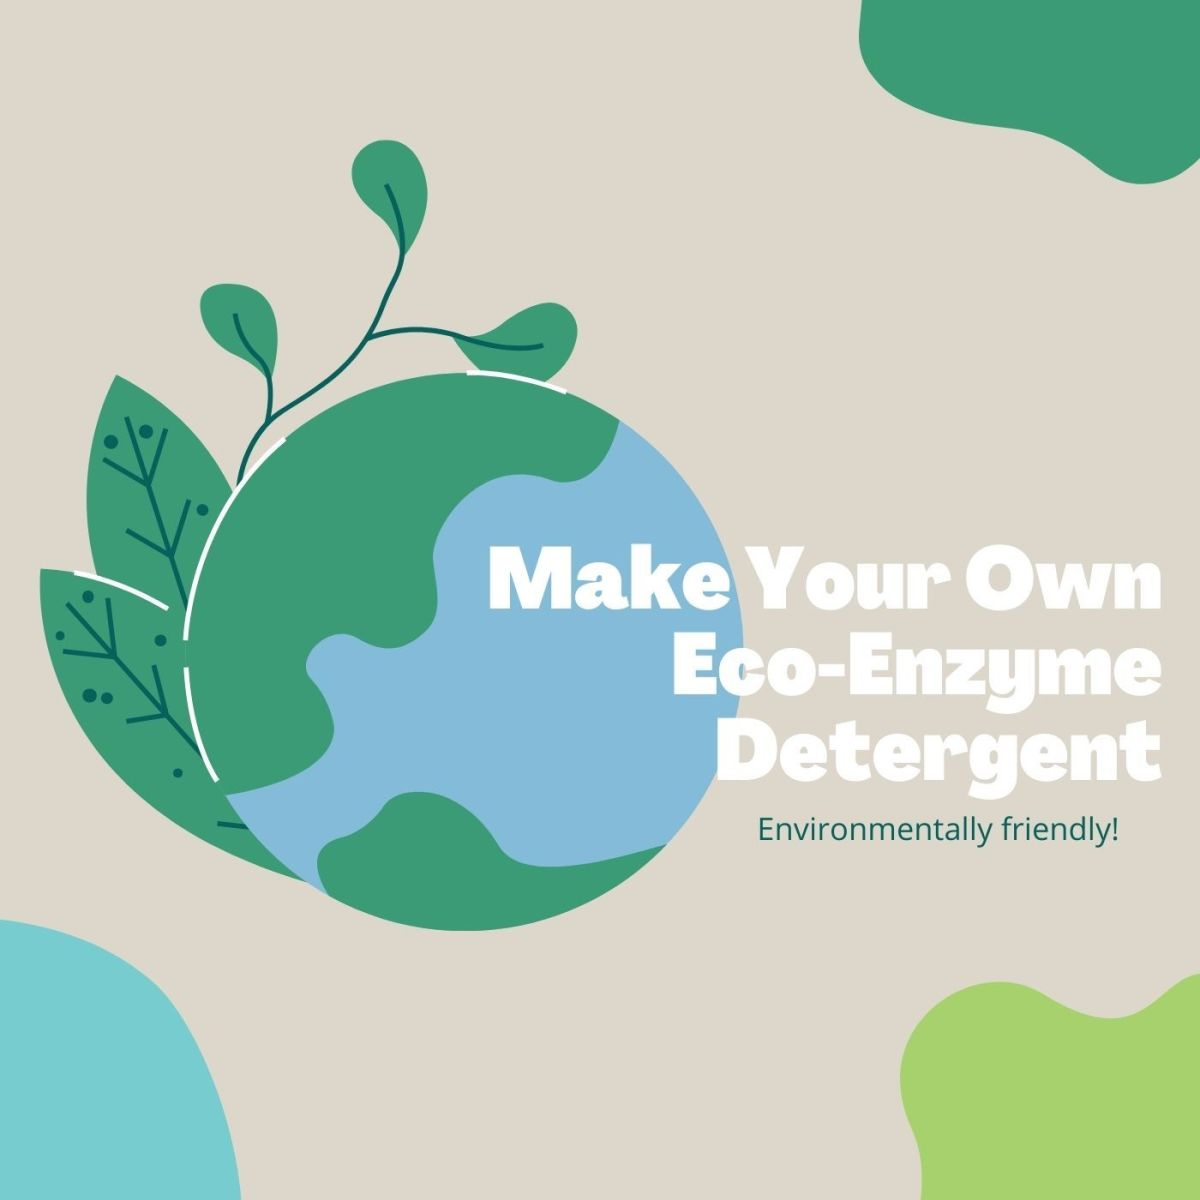 Making your own eco-friendly detergent has never been easier.